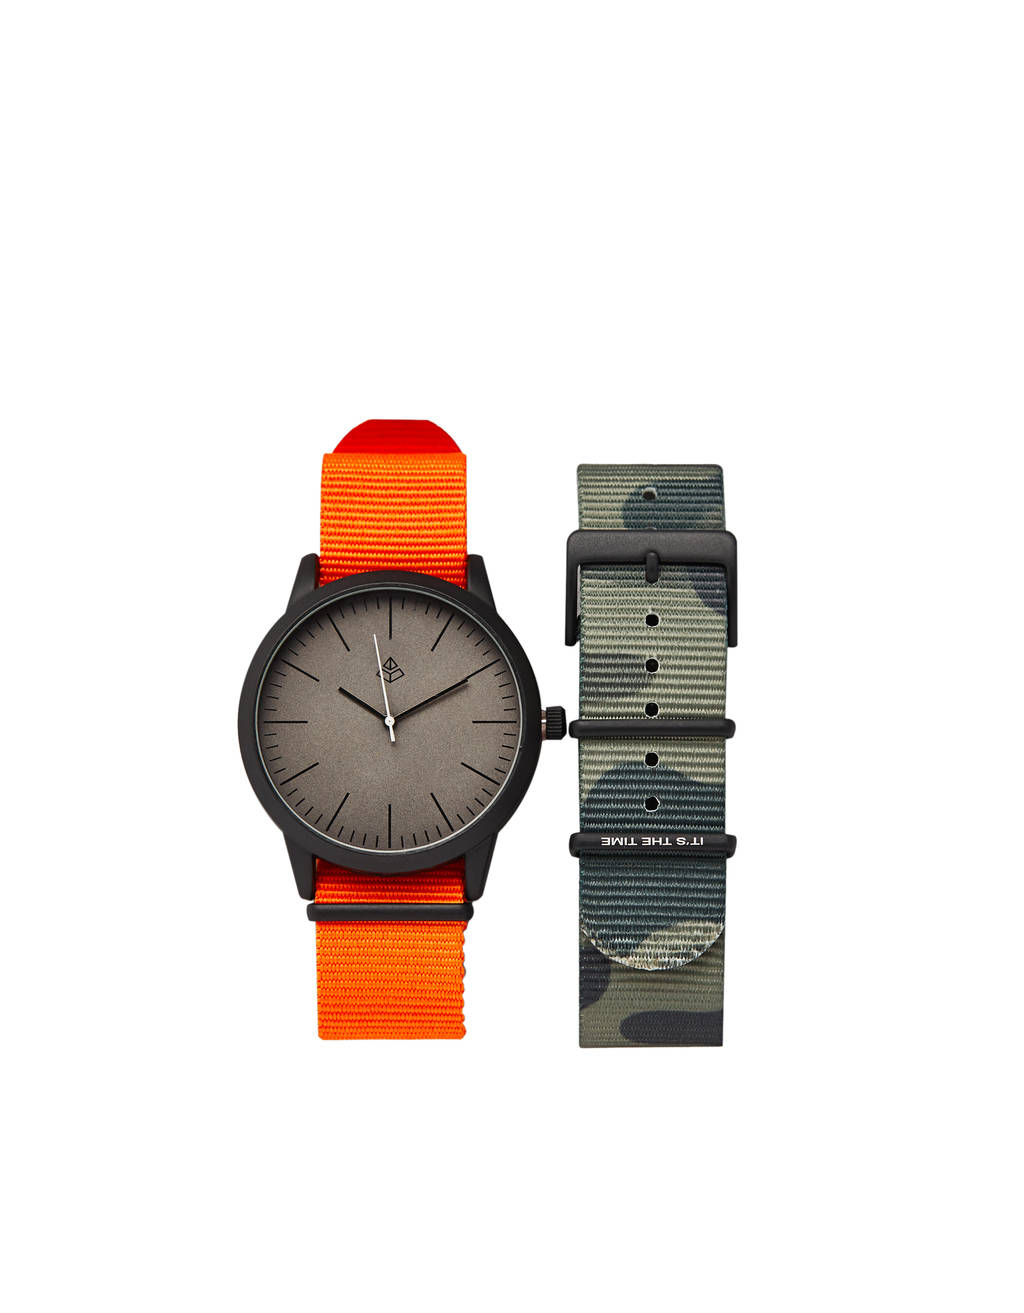 Analogue watch with interchangeable strap